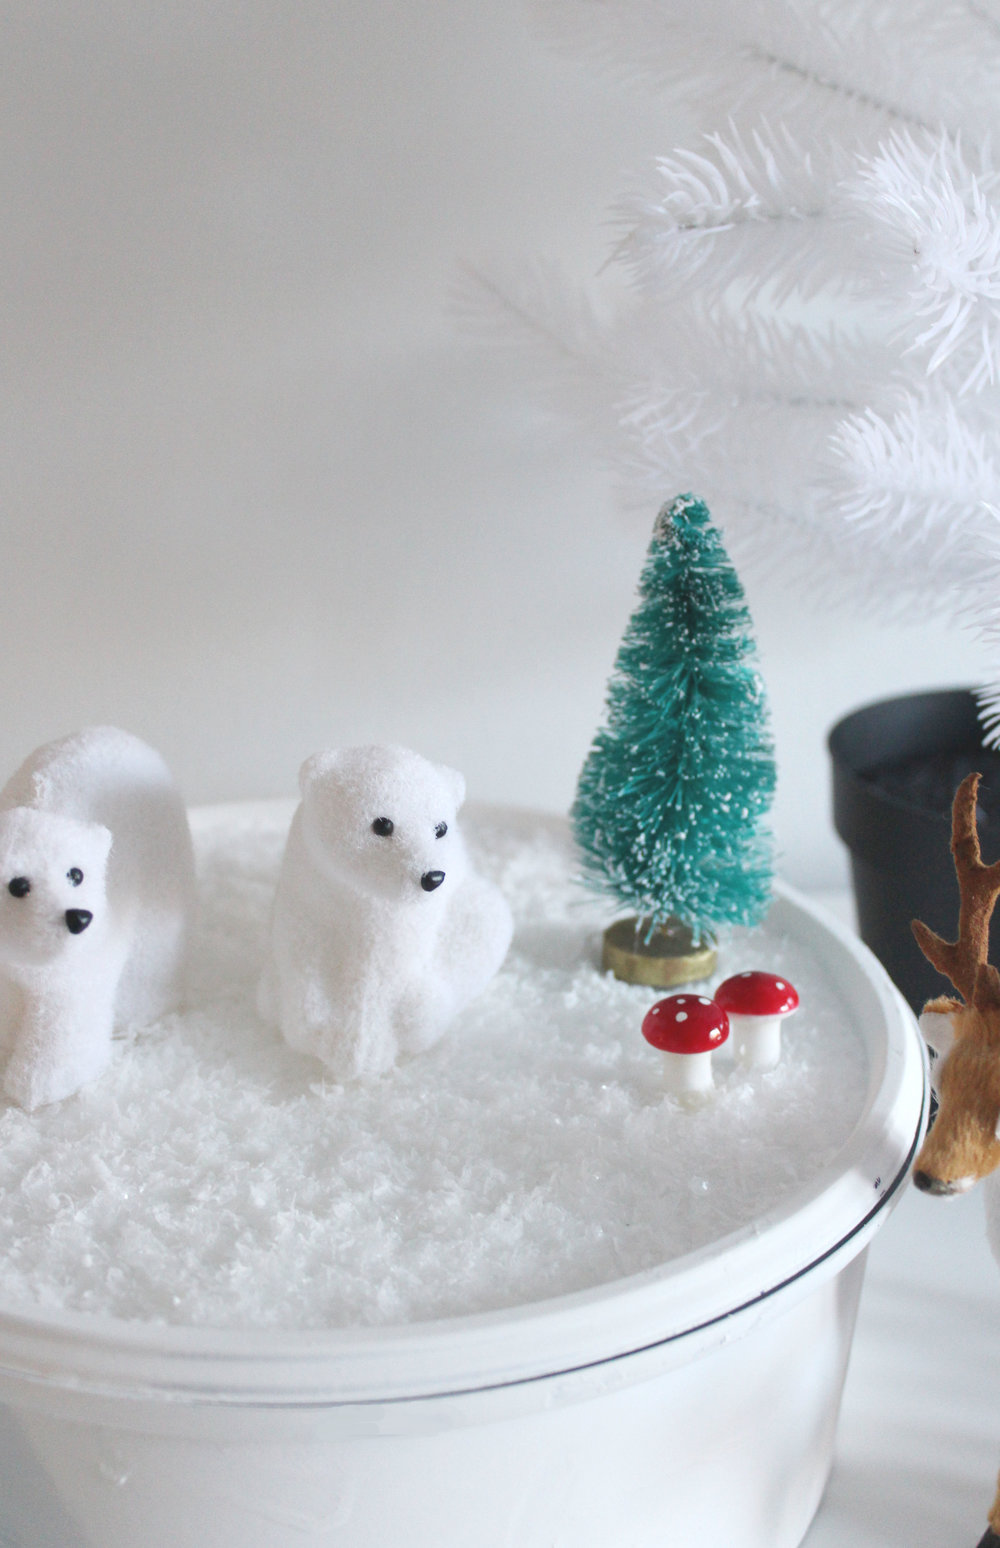 How to make a winter scene craft